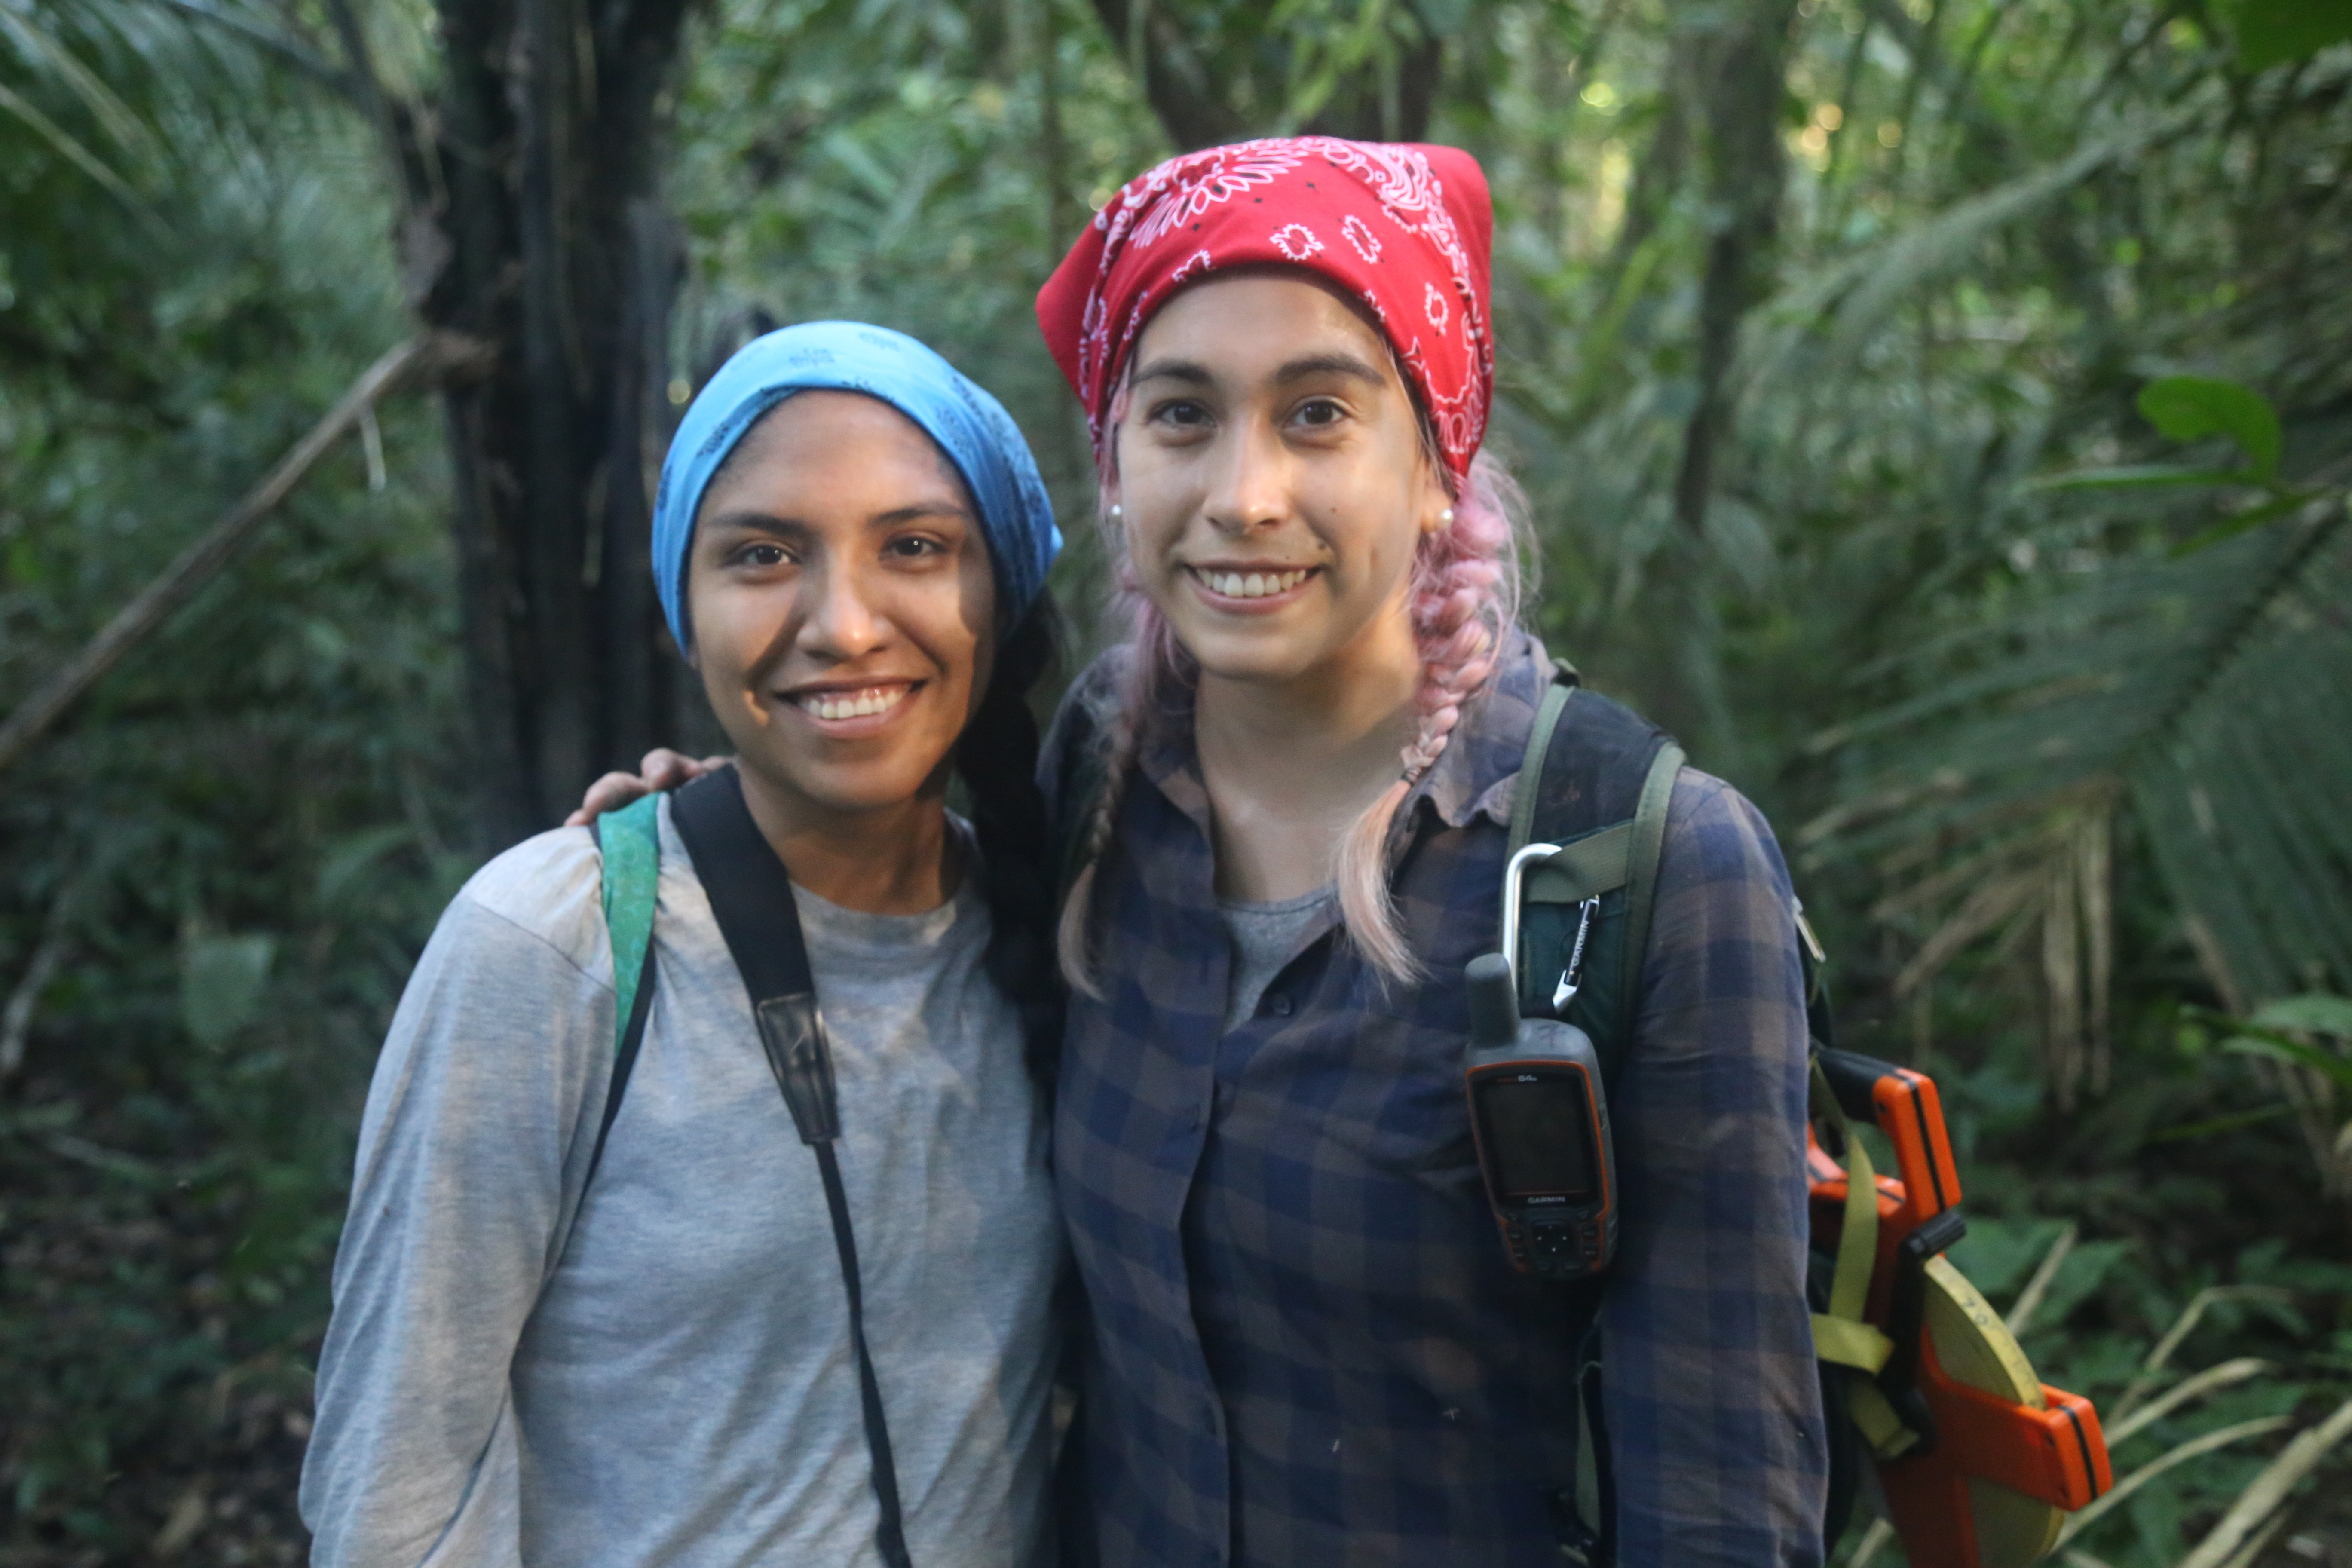 Nicole (right) and Claudia enjoying their time in the forest.